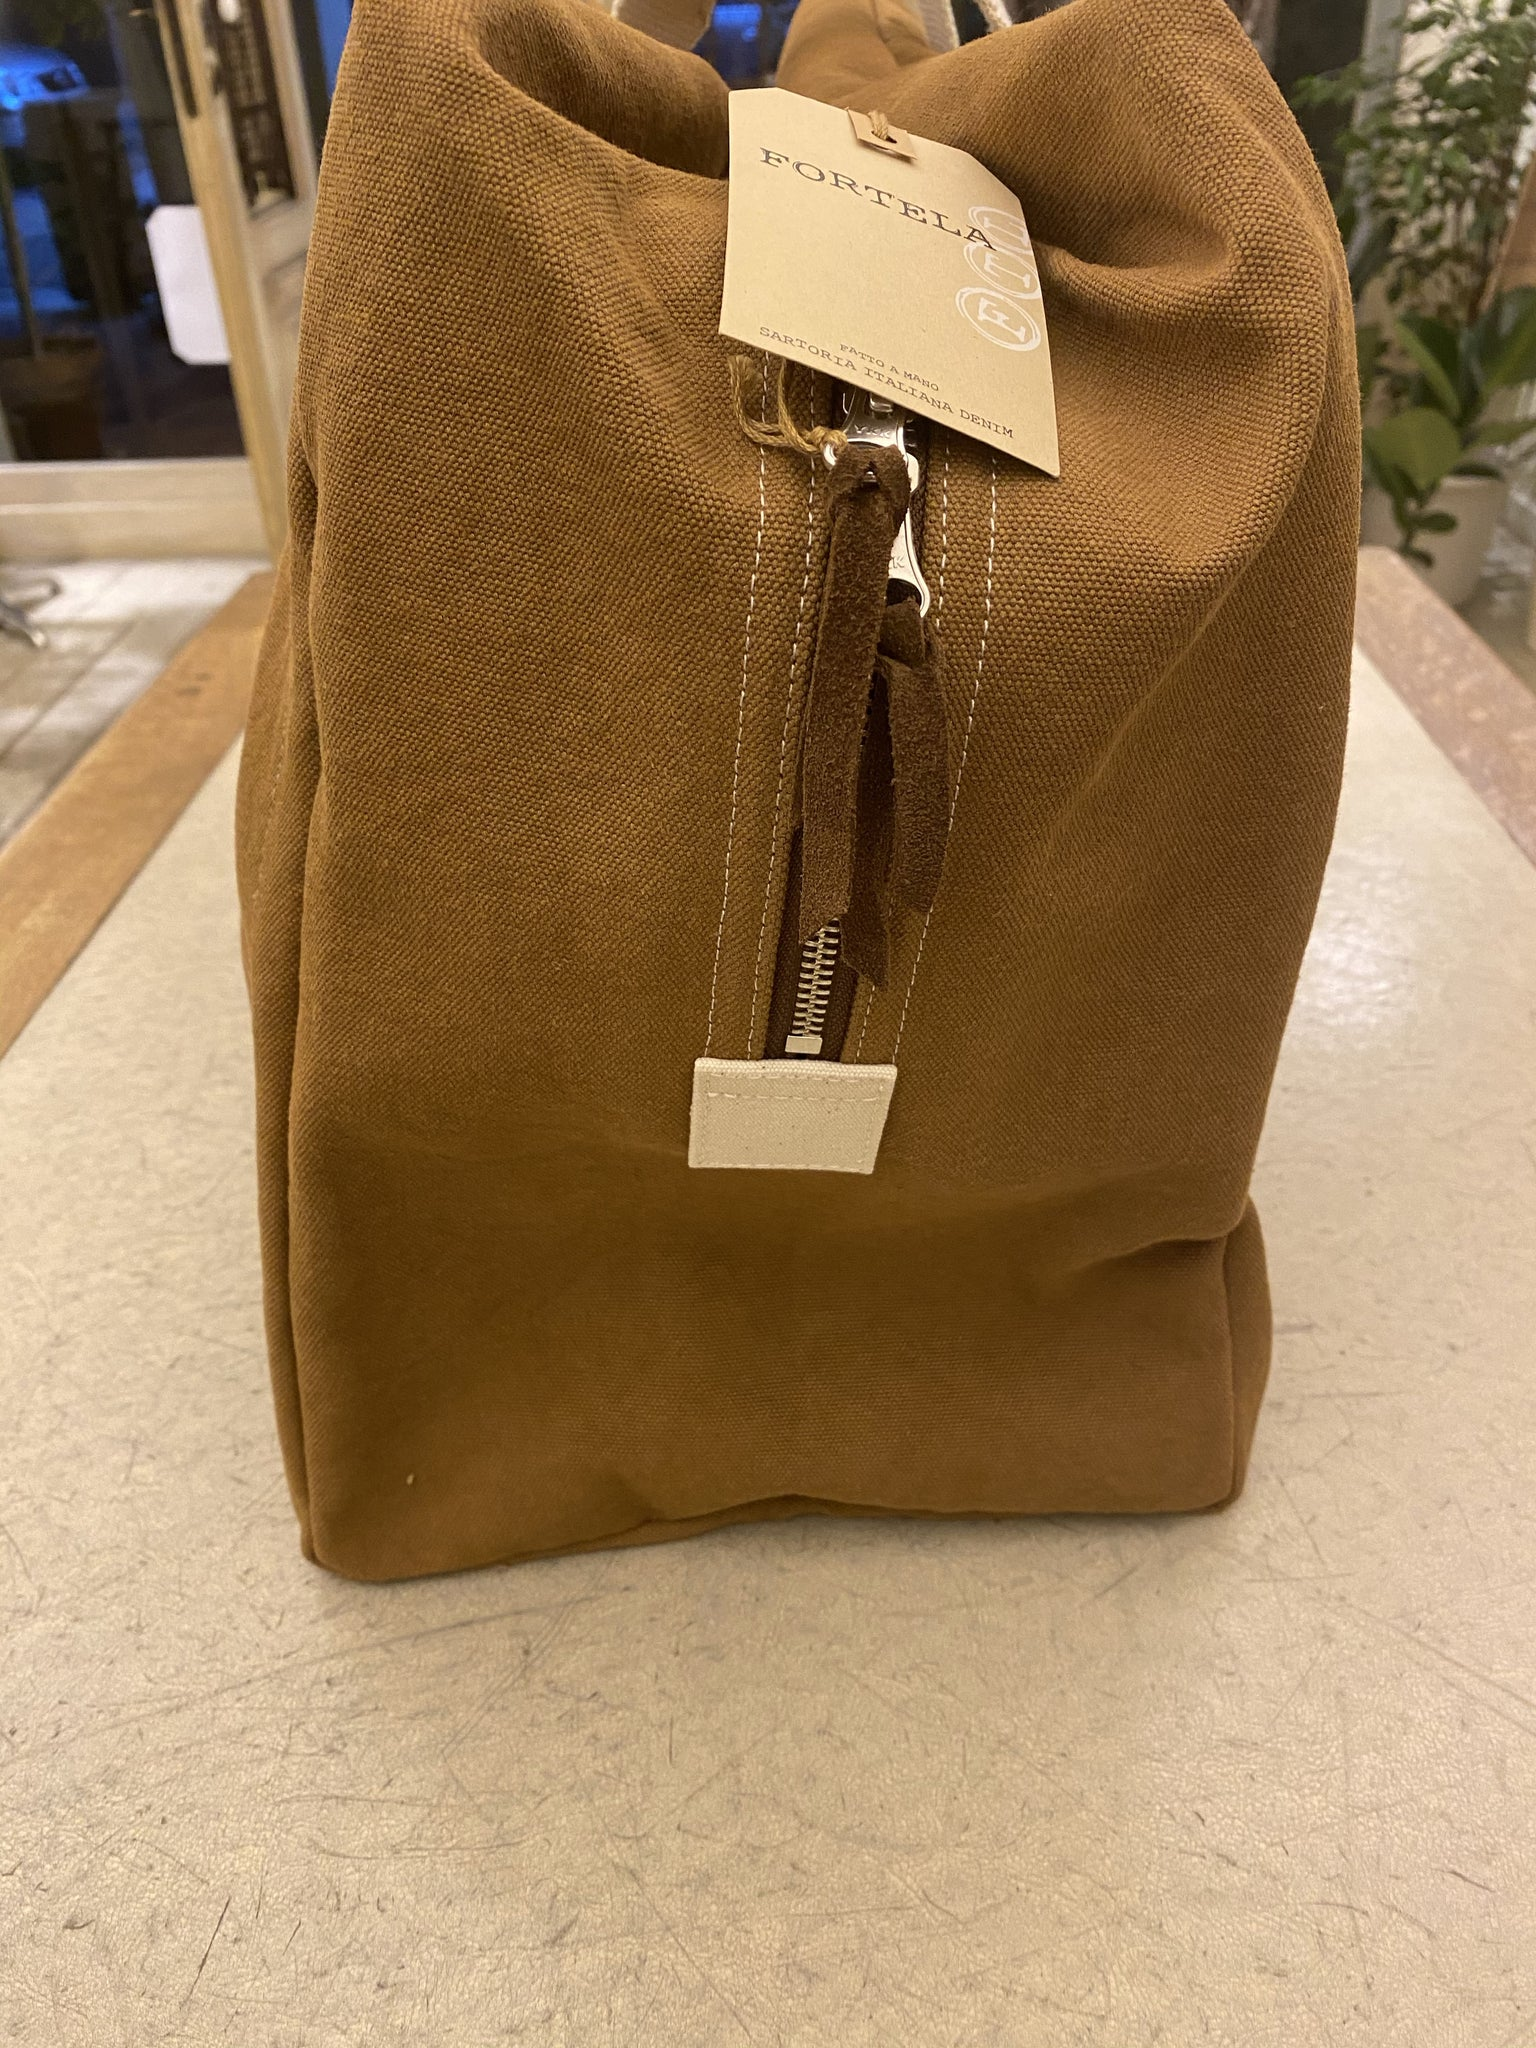 CANVAS BAG - FORTELA _ CAMMEL